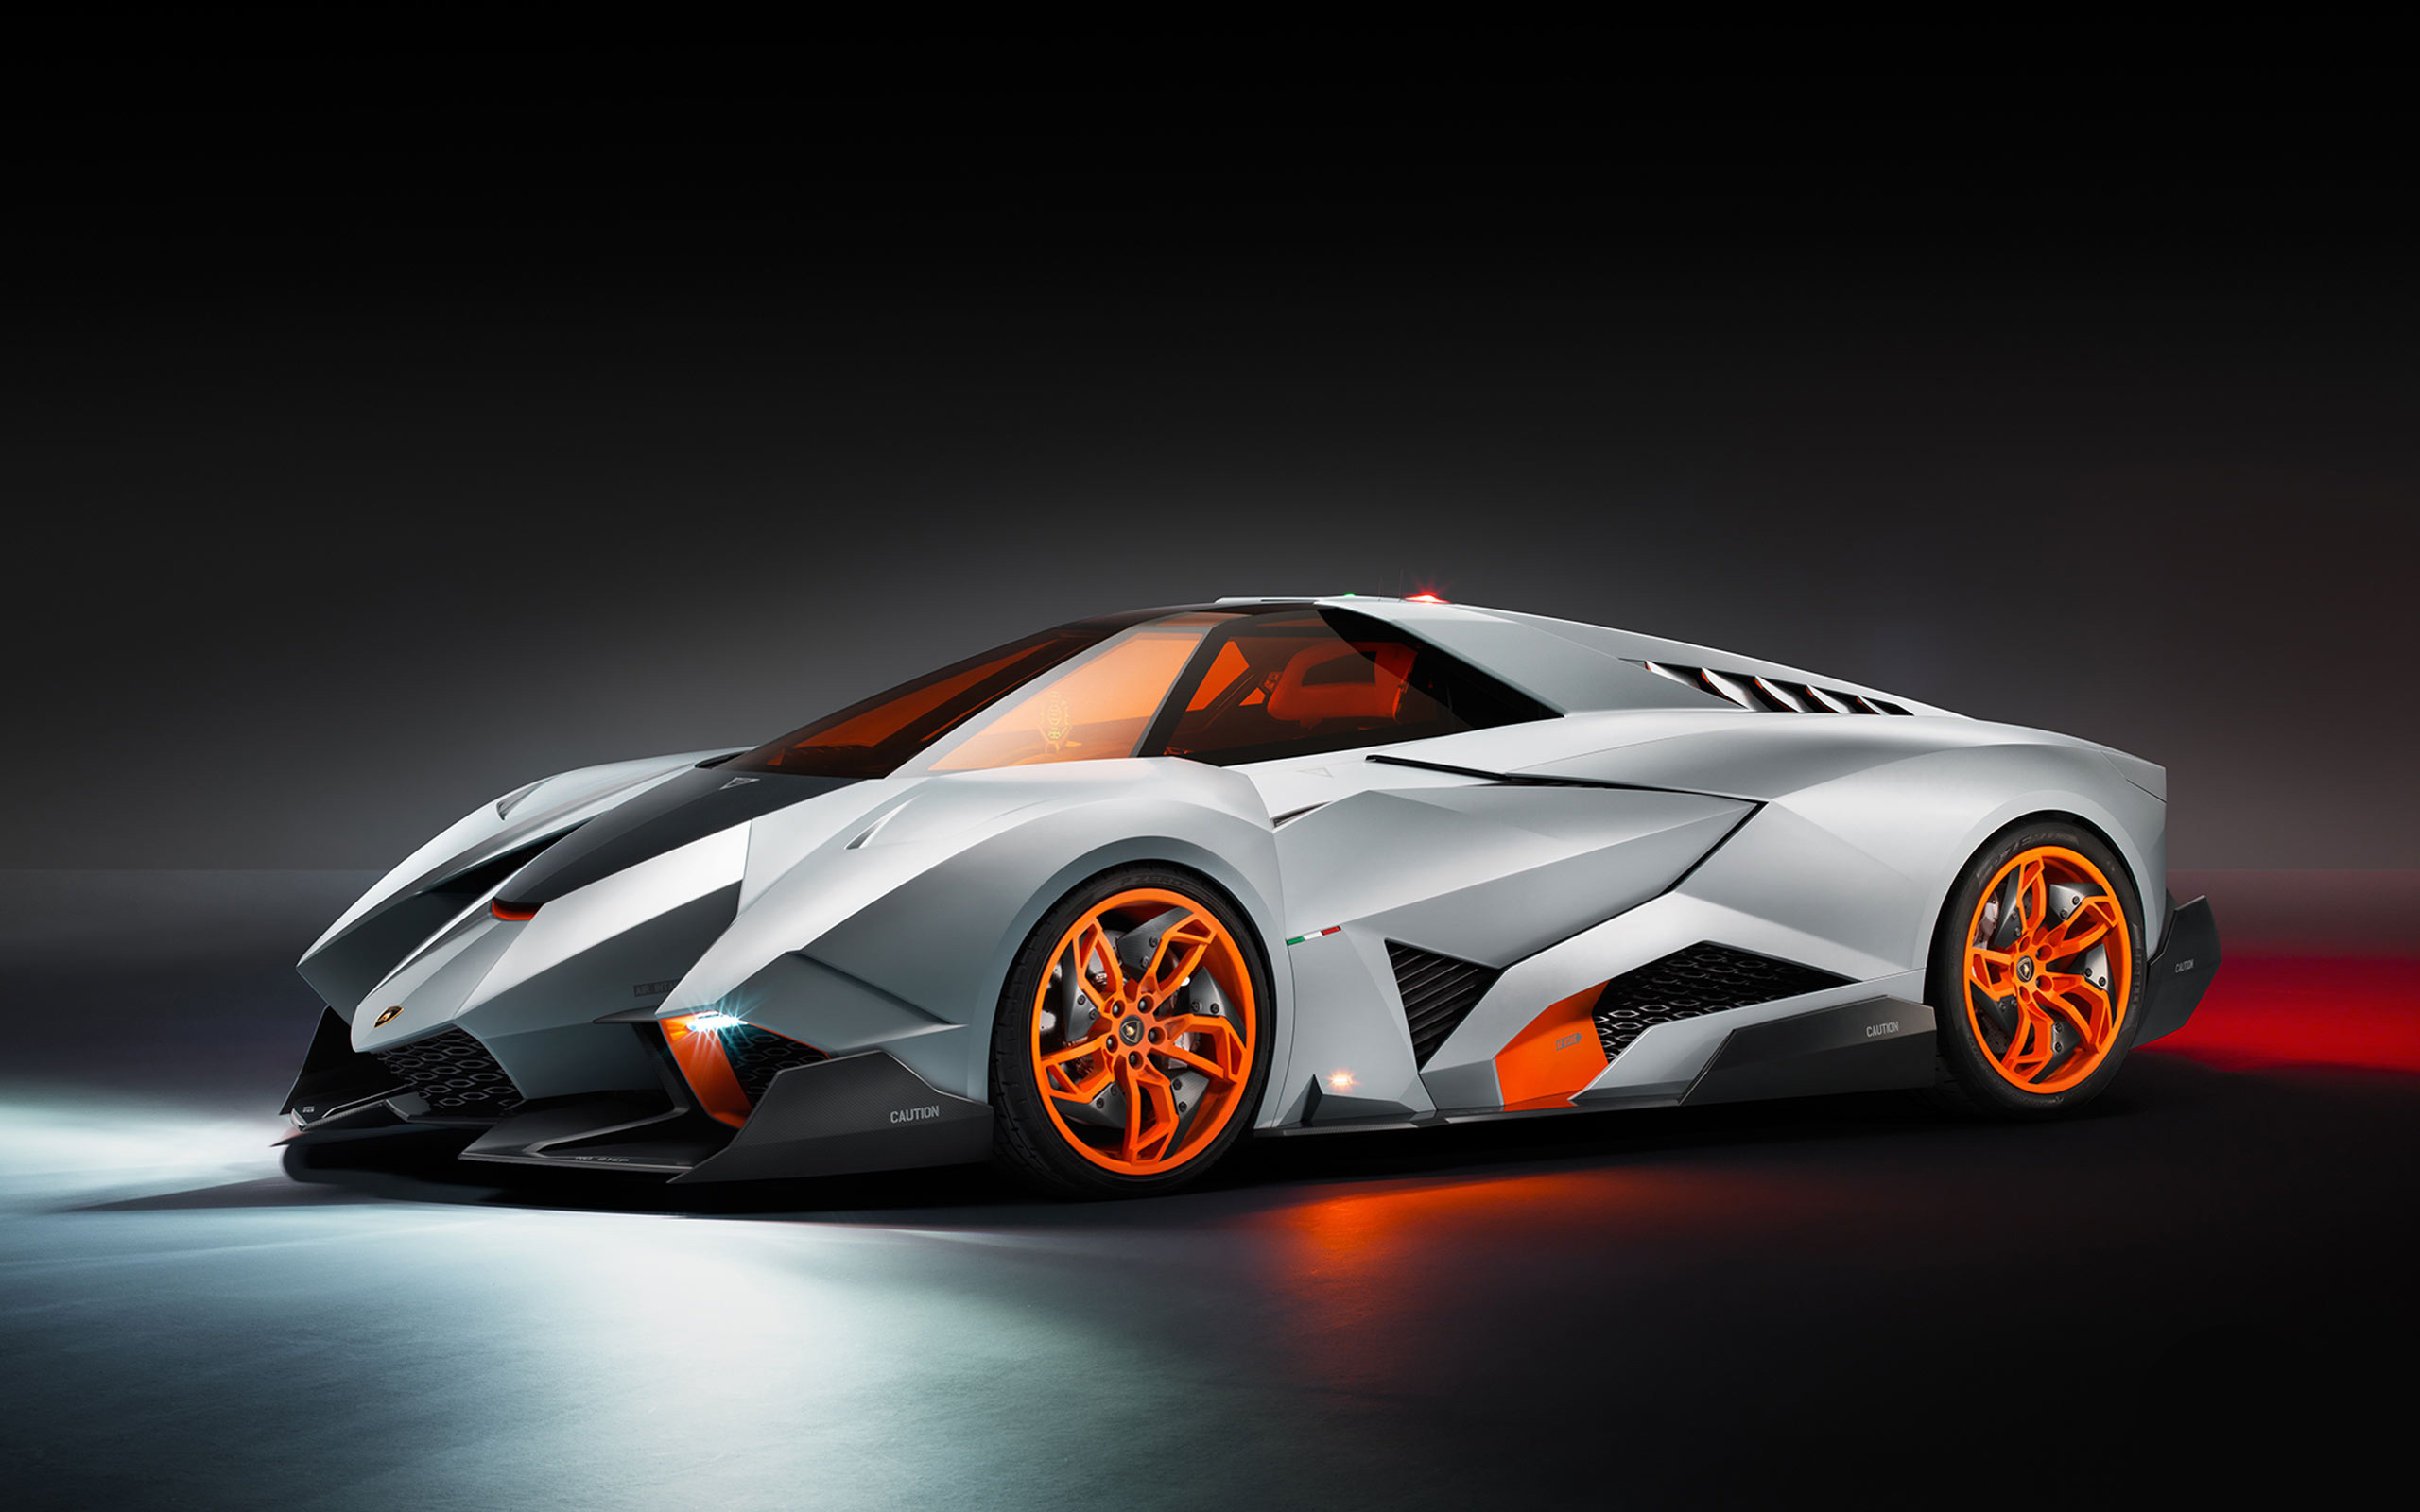 Lamborghini Egoista Concept Wallpaper HD Car Wallpapers - Car pictures